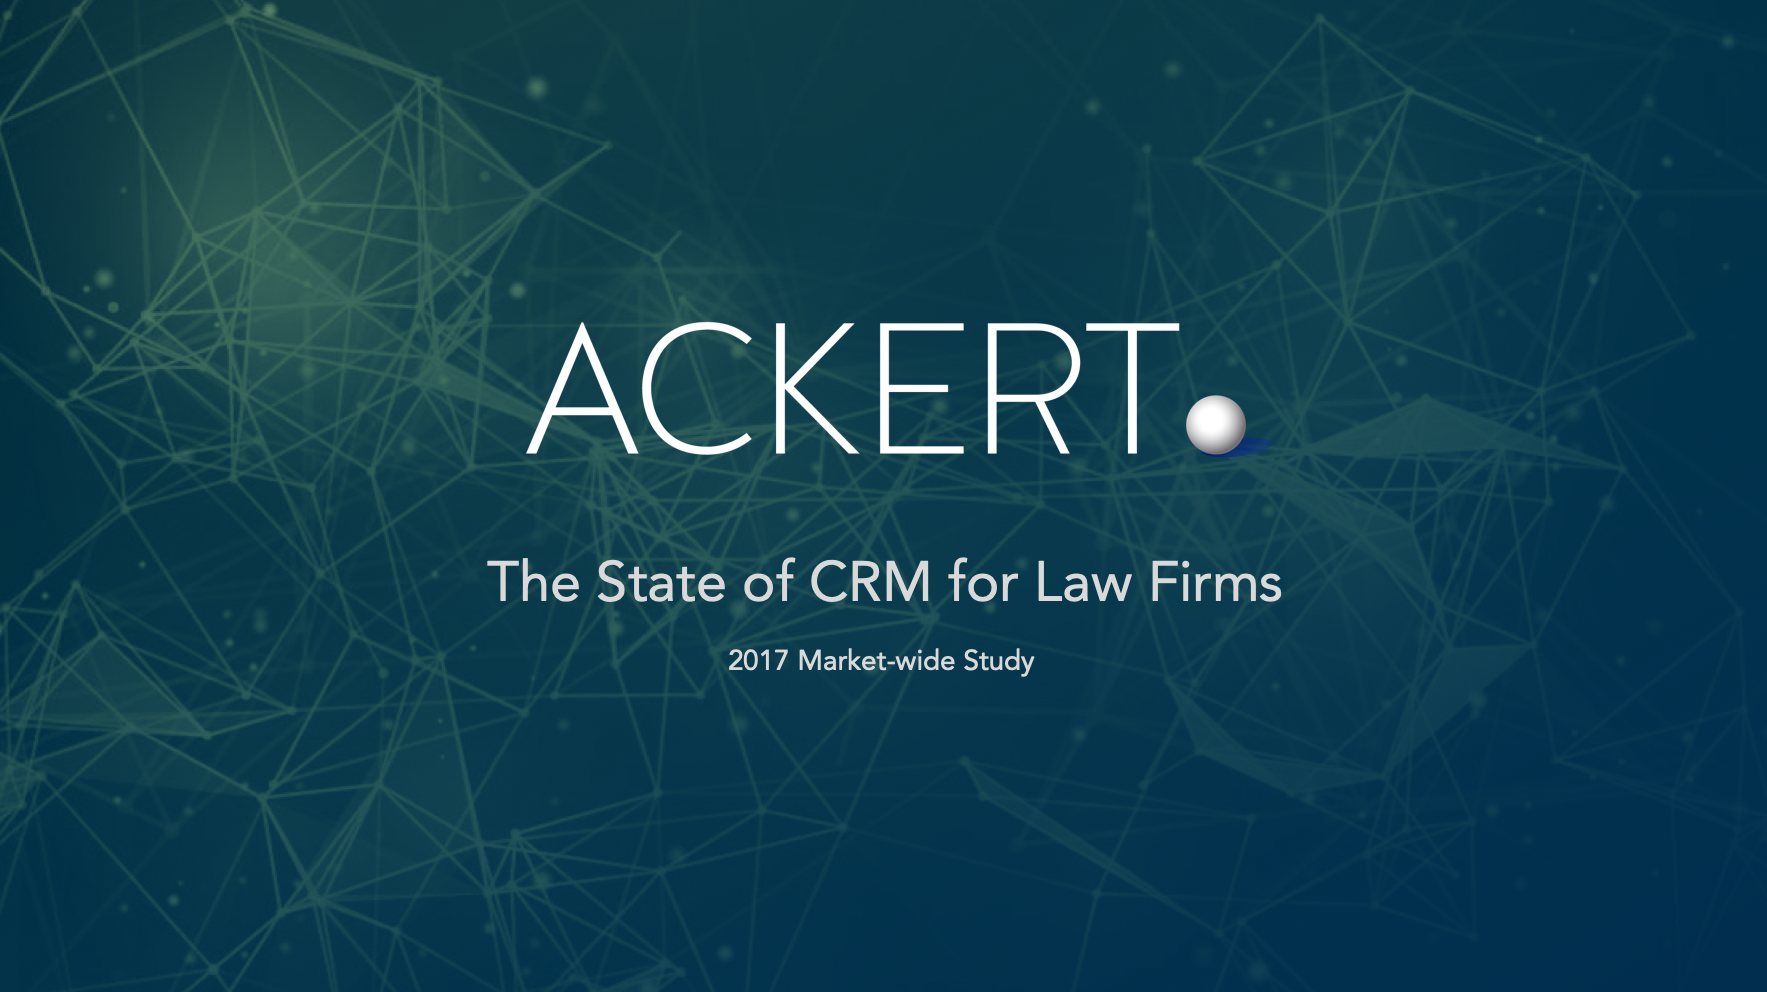 The State of CRM for Law Firms (2017)